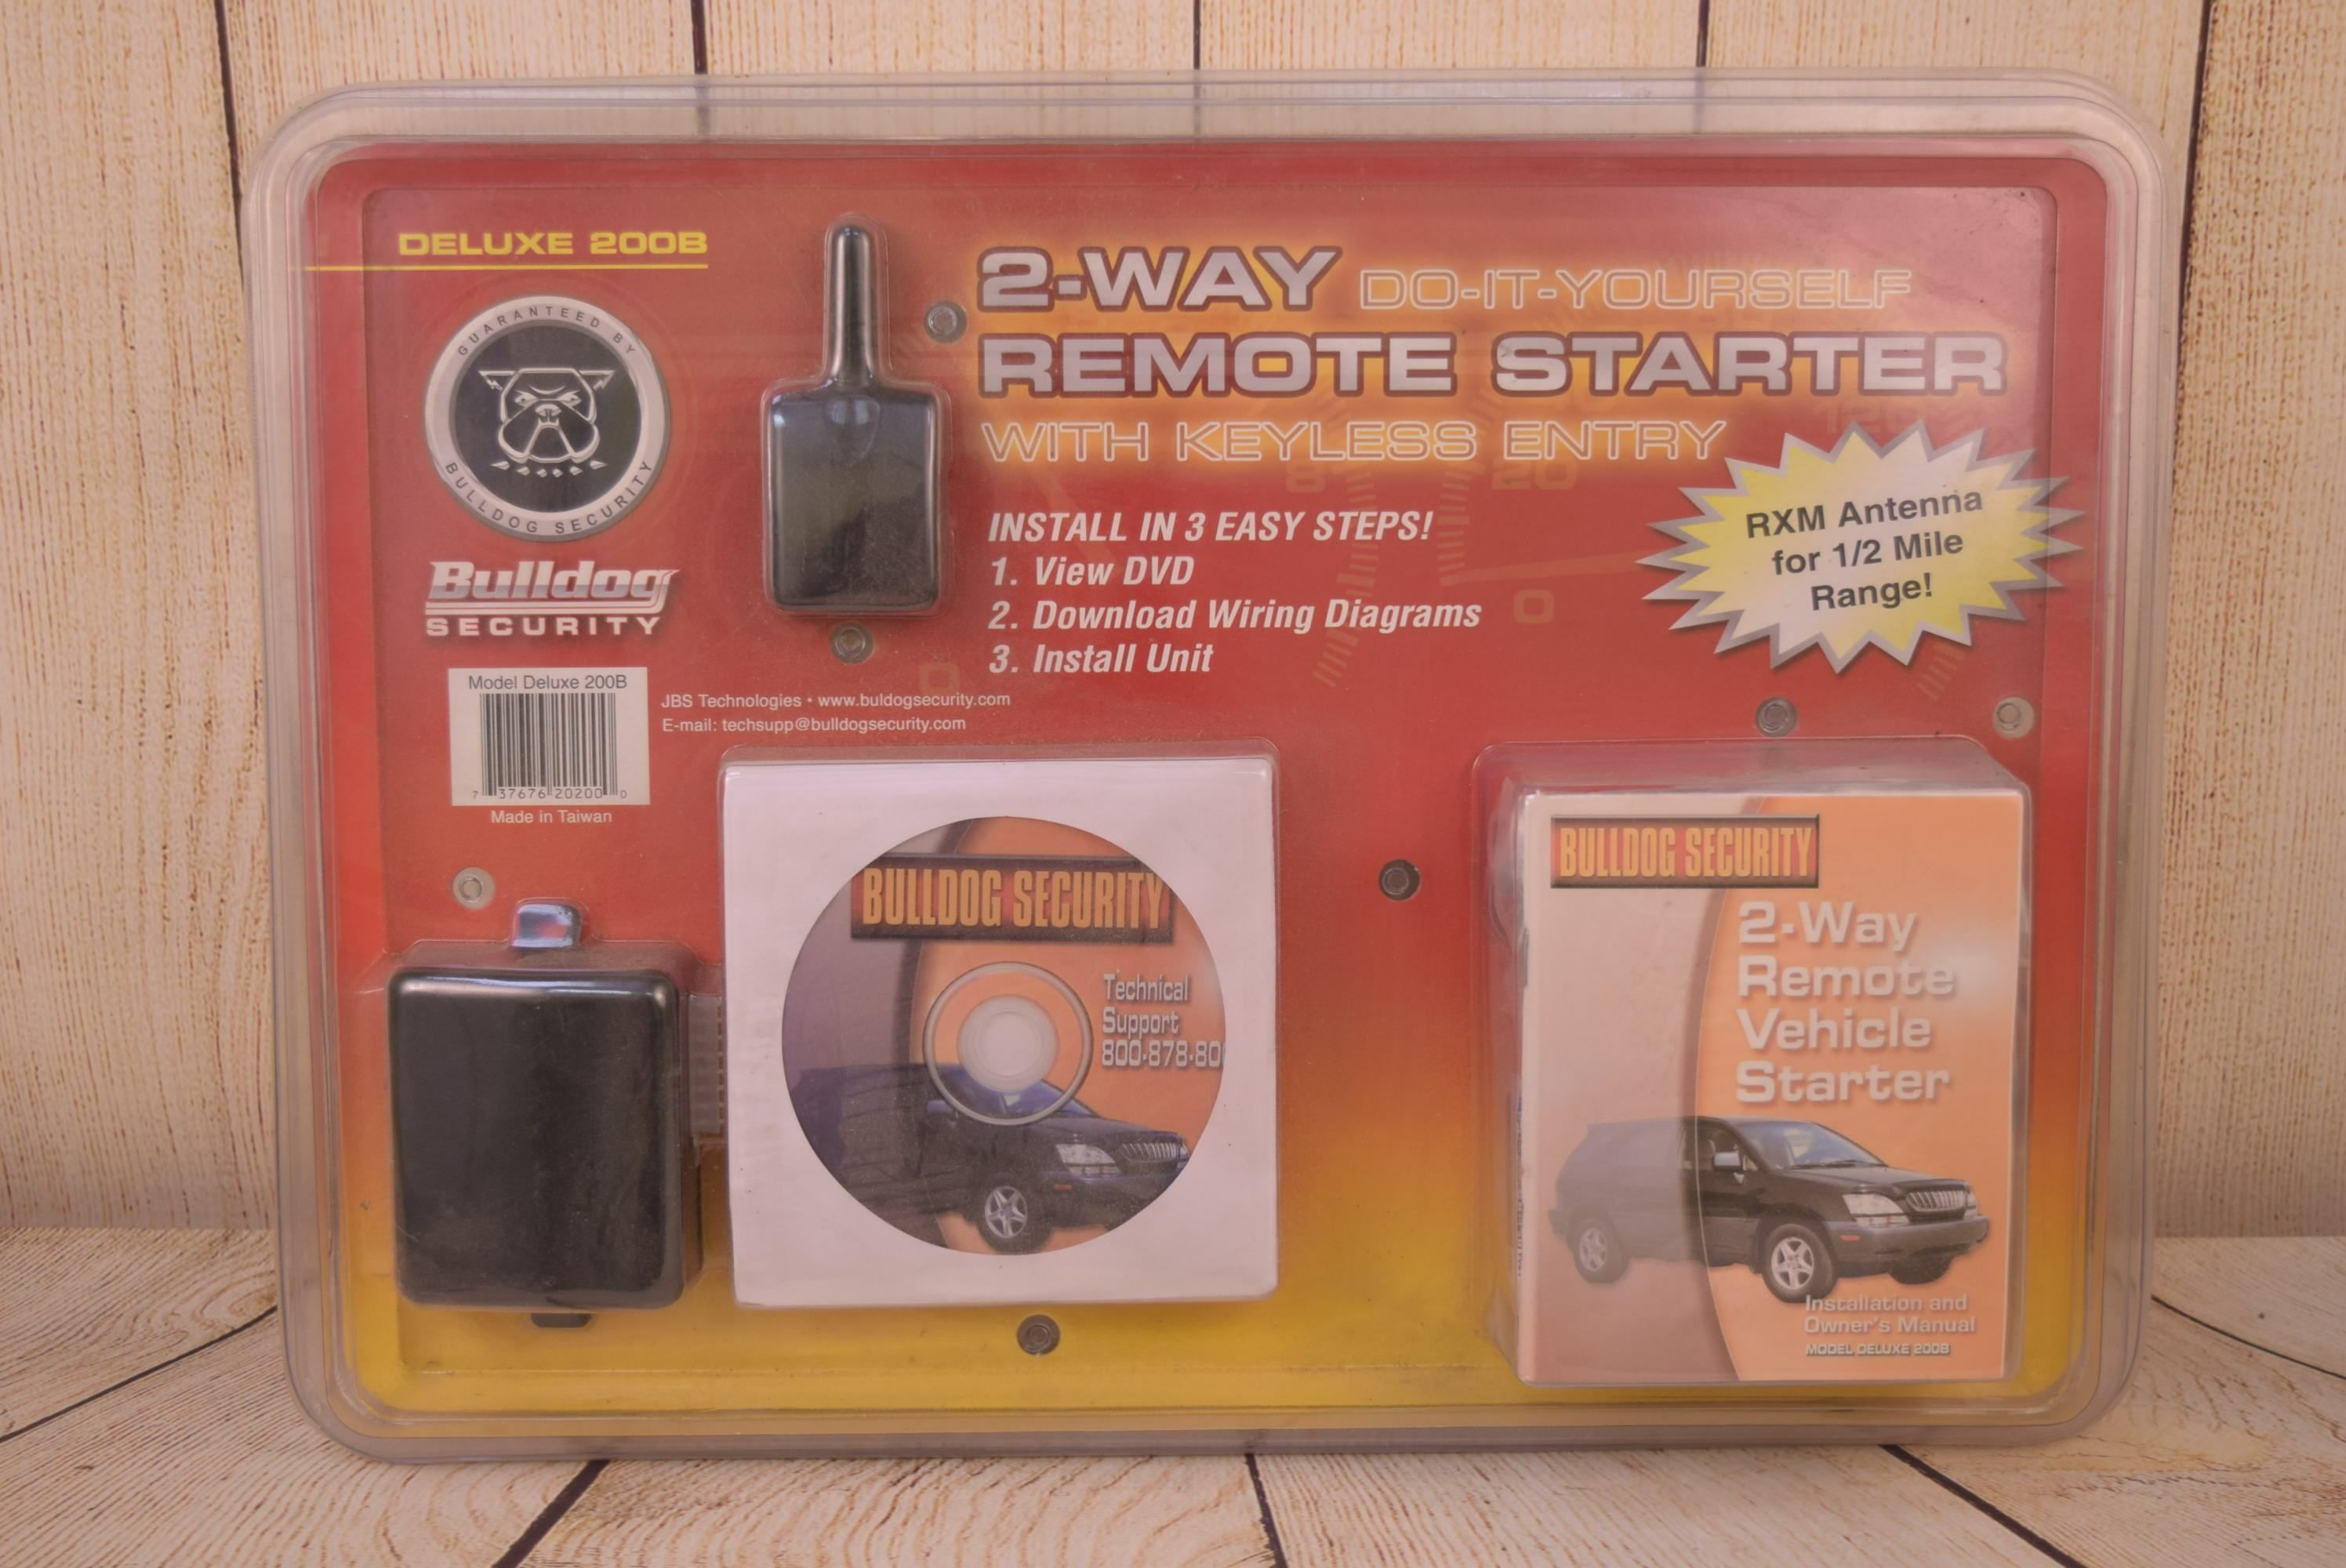 Bulldog Security Deluxe 2 Way Remote Starter 200b Bulldog Security Remote 2 Way